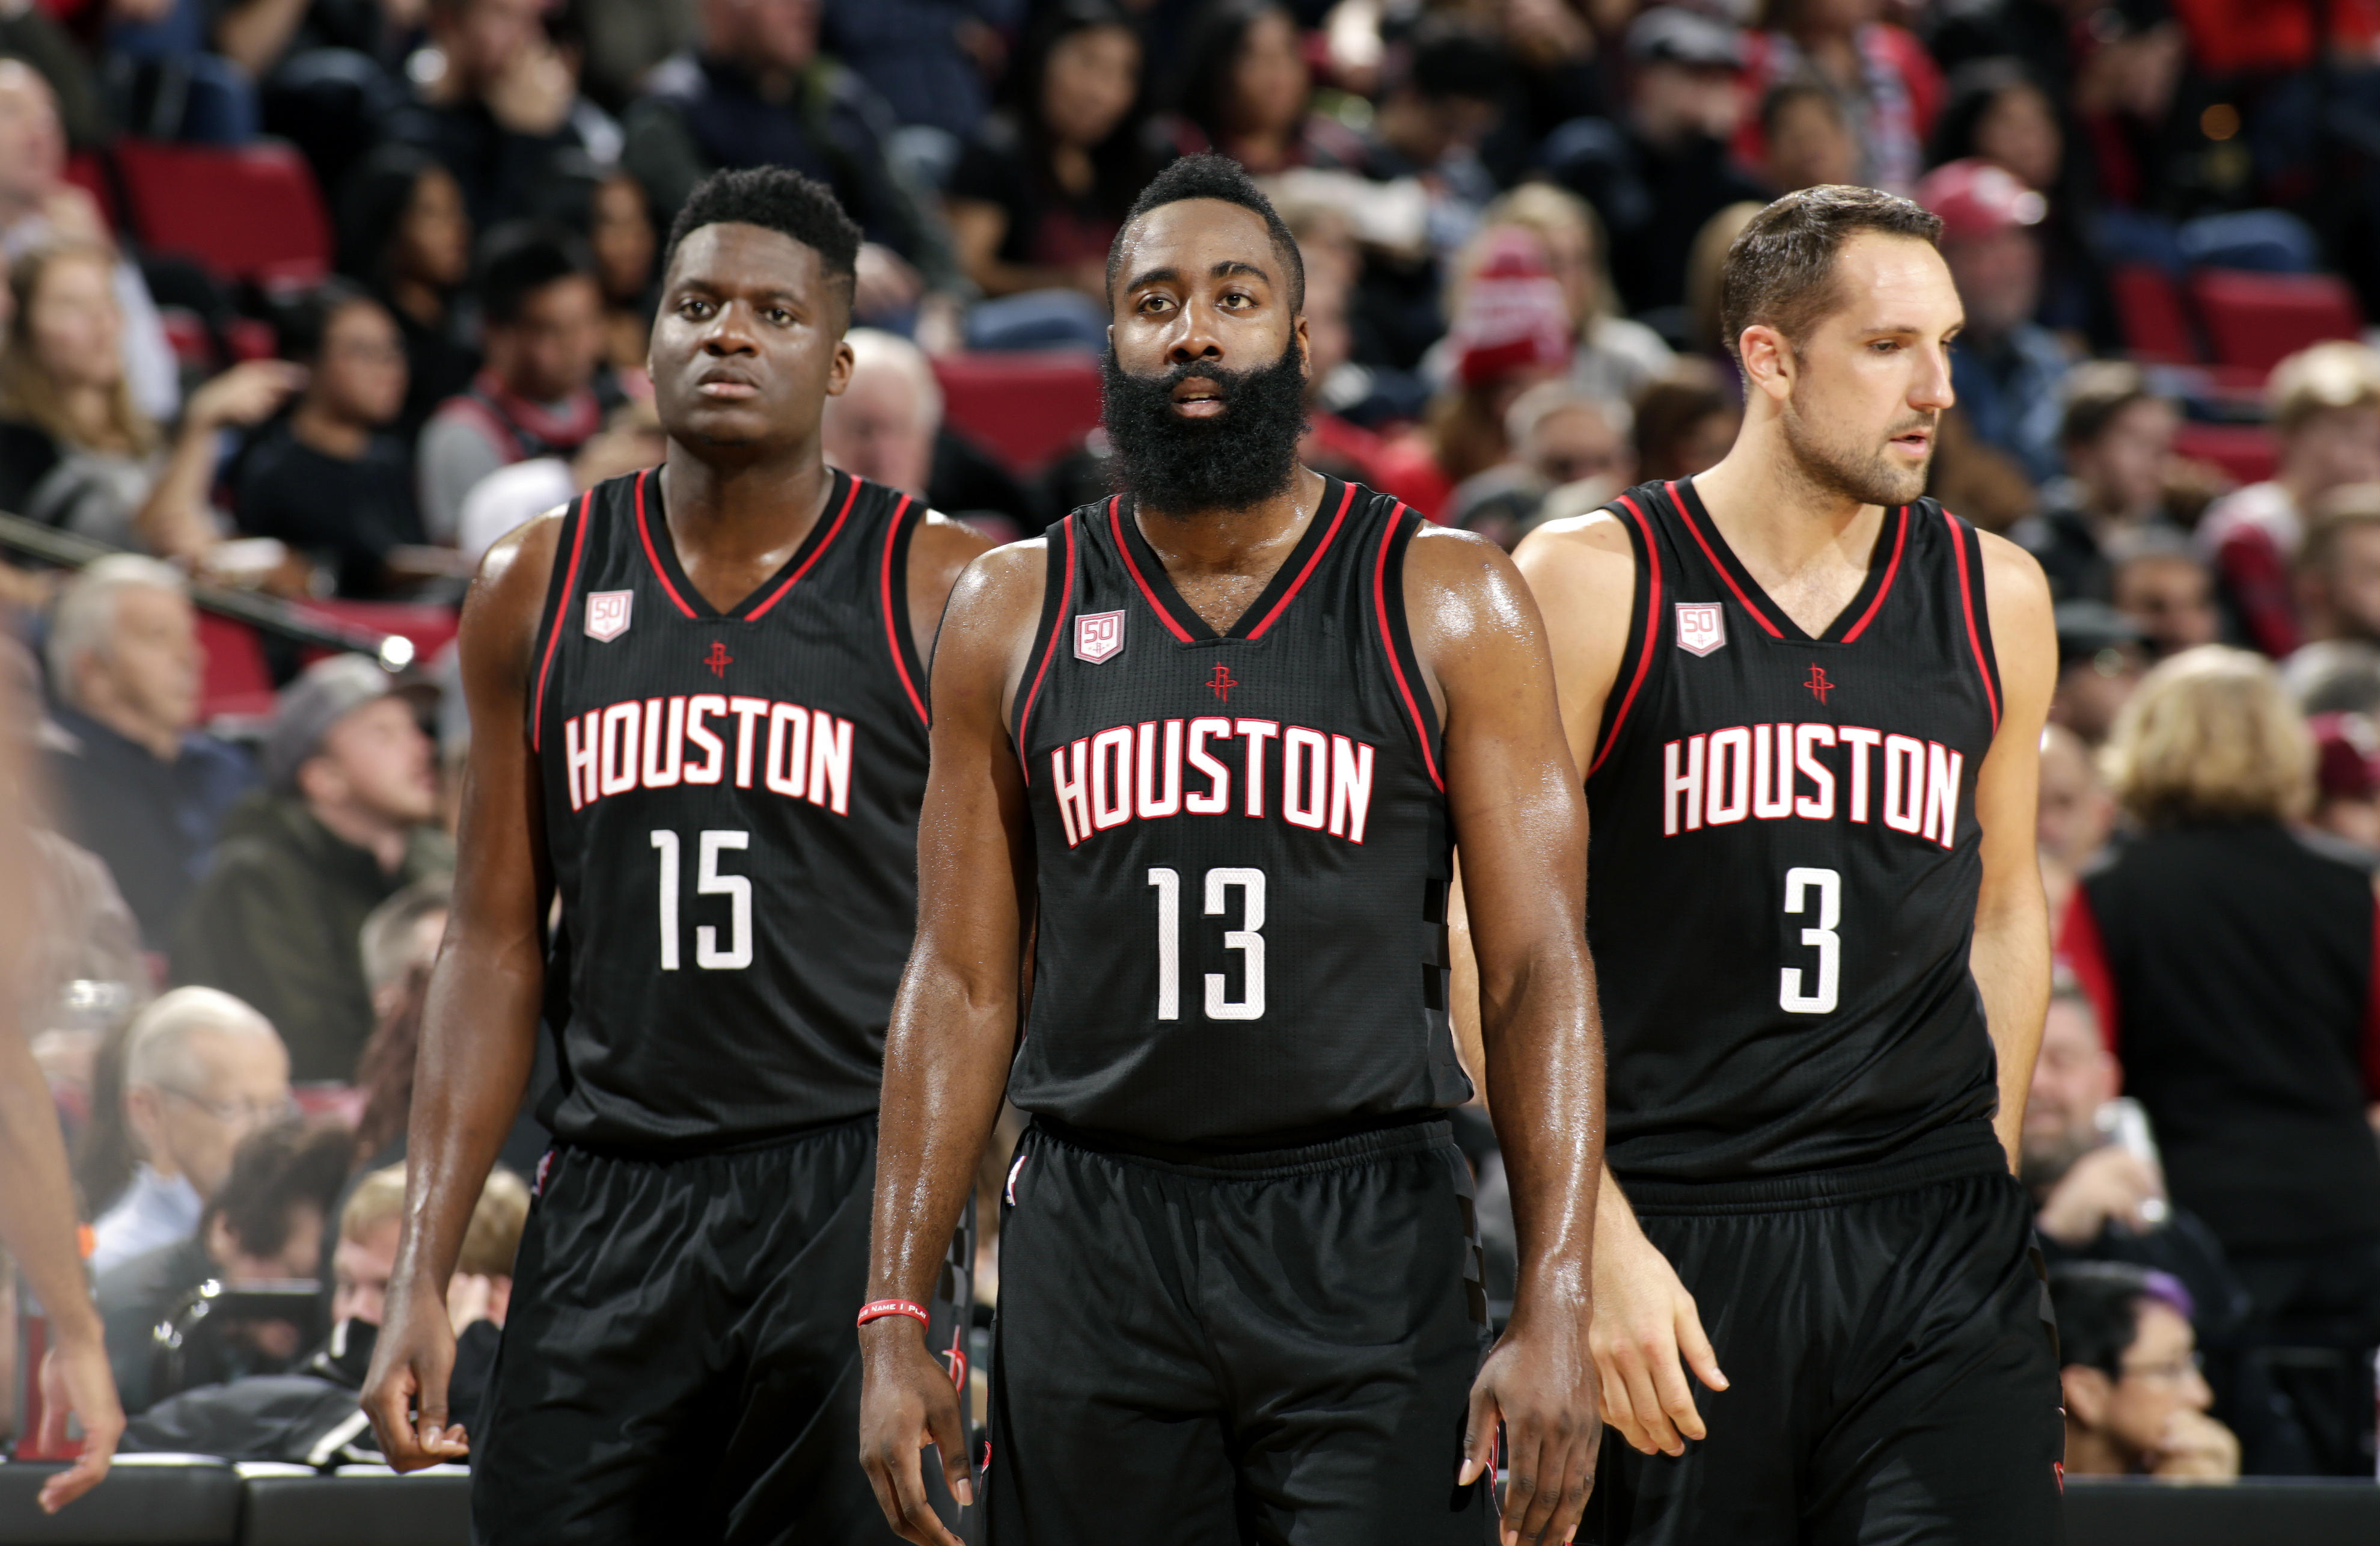 Houston Rockets vs. New Orleans Pelicans at Toyota Center ...